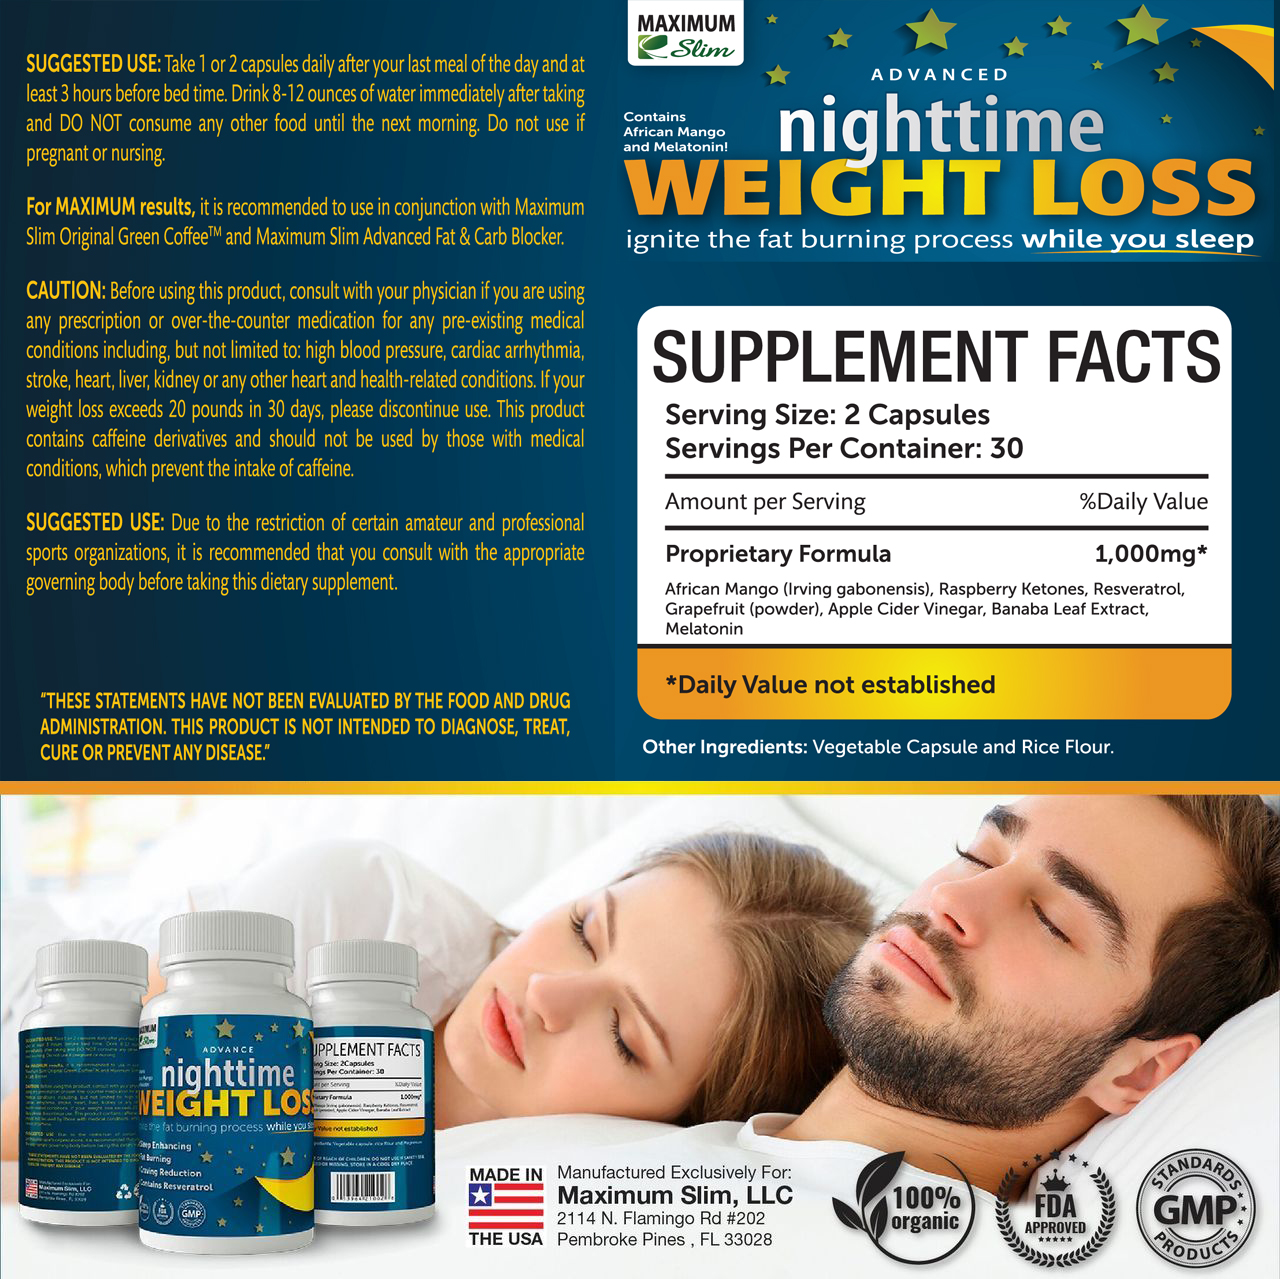 nighttime-weight-loss-label-presentationskr718.jpg